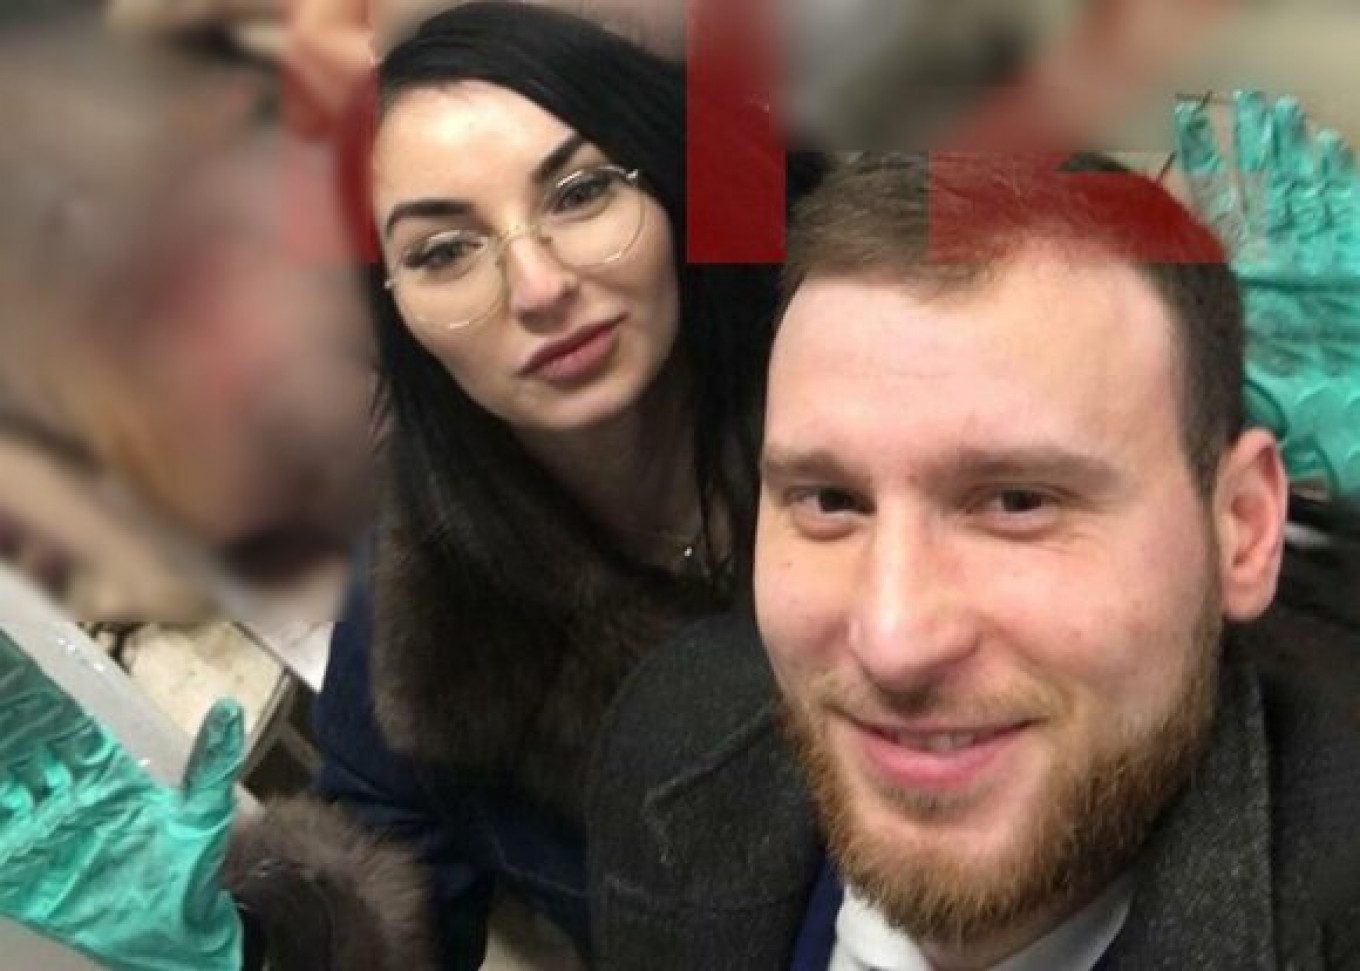 Russian Police Officer Fired Over Morgue Selfies - News